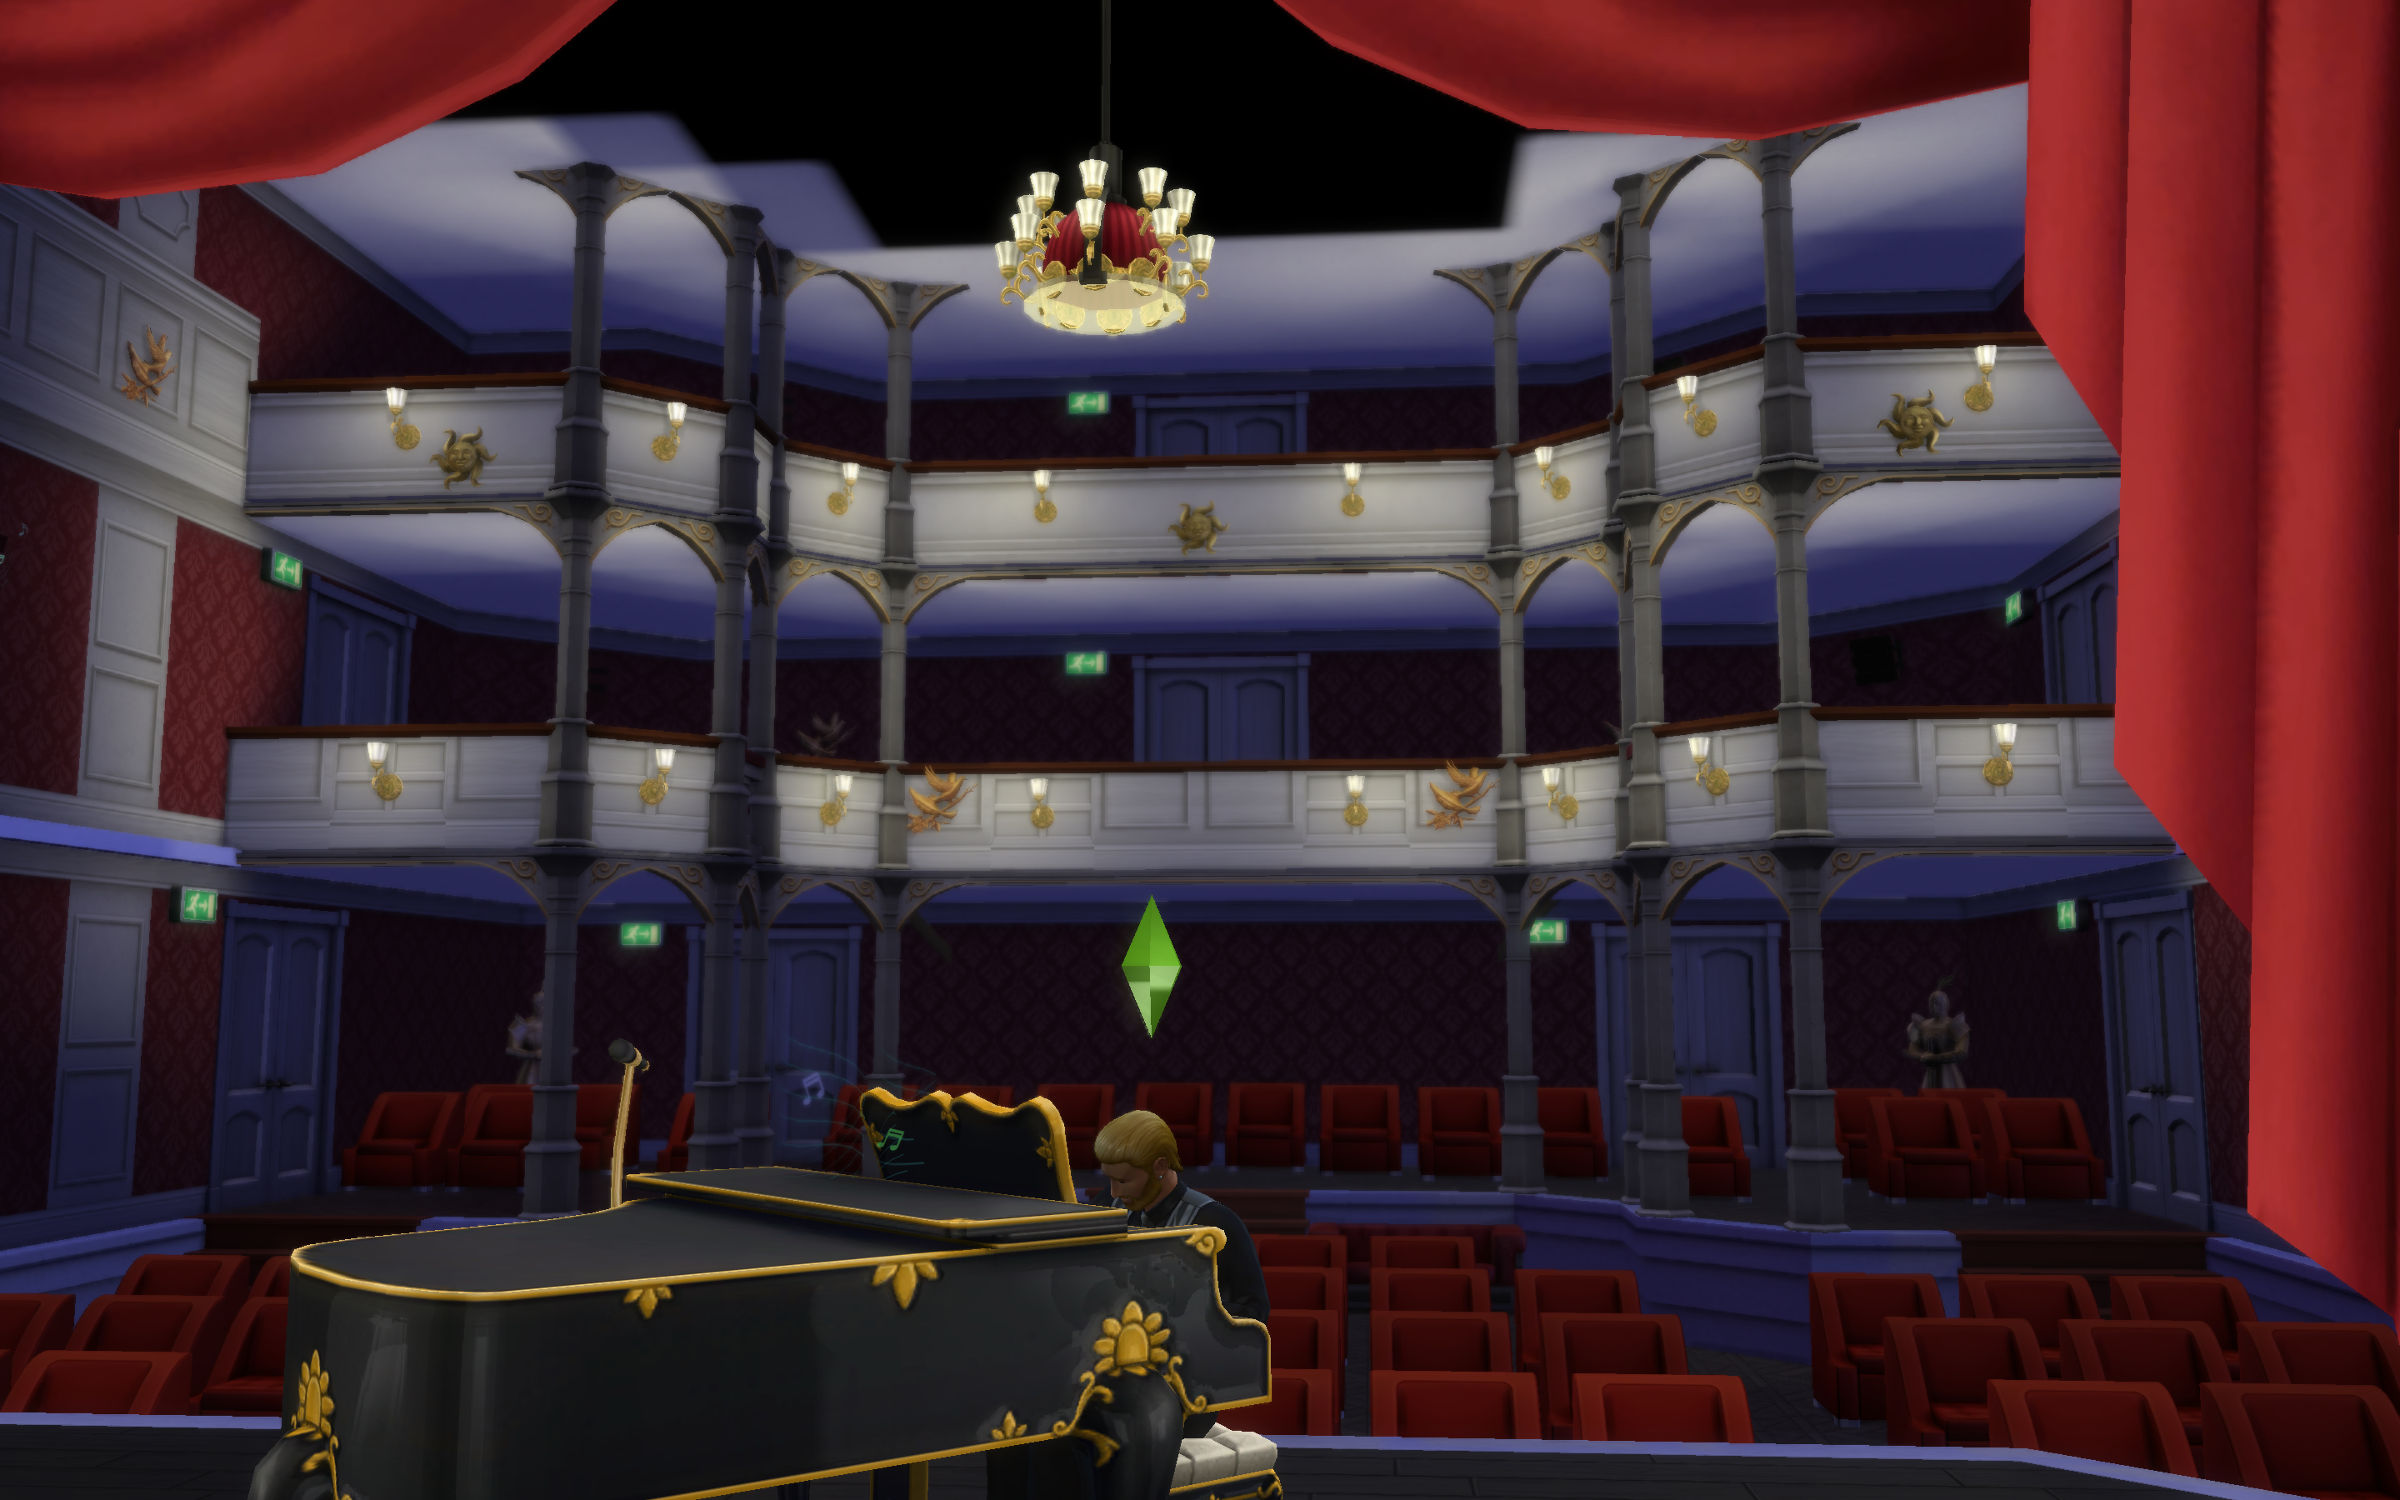 How To Build A Stage In Sims